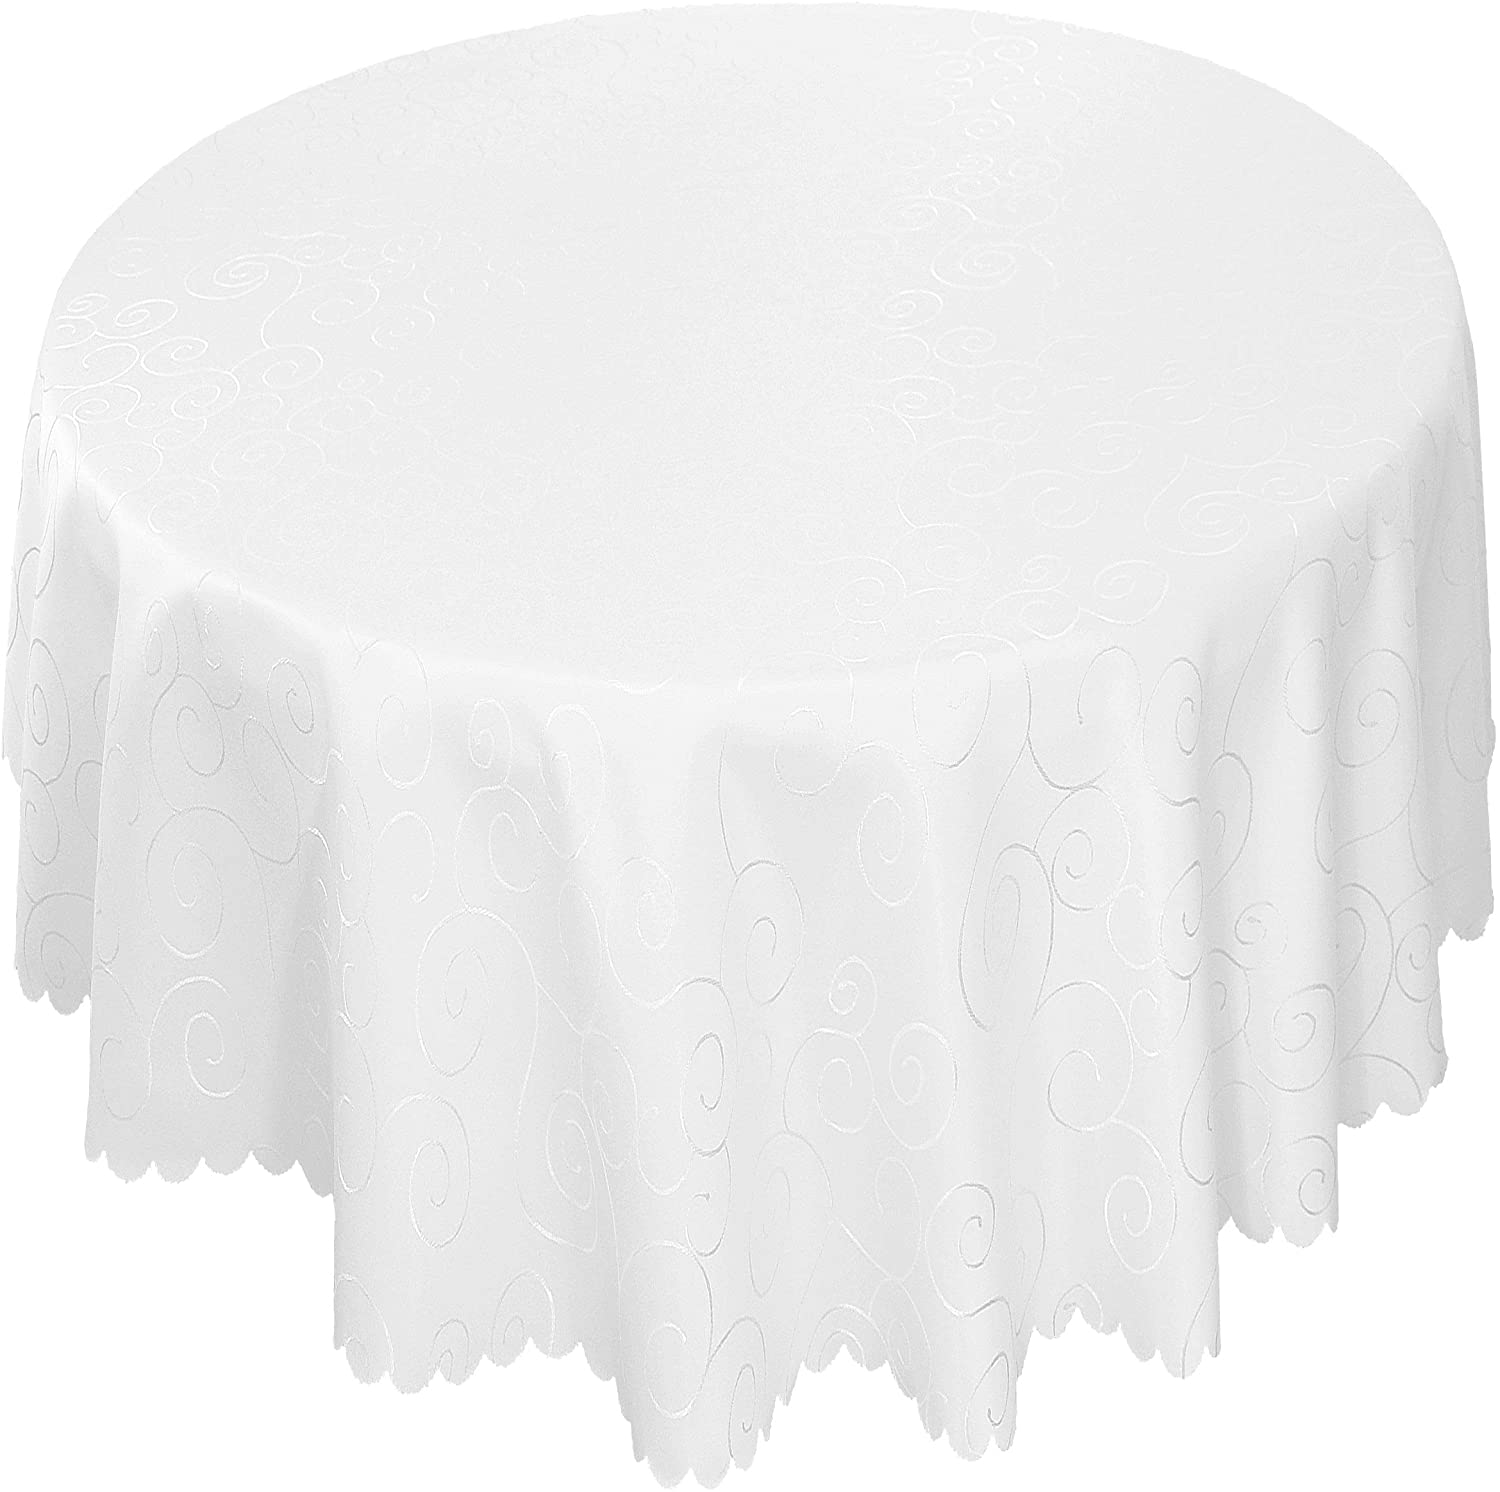 EcoSol Designs Microfiber Damask Tablecloth, Wrinkle-Free & Stain Resistant (60